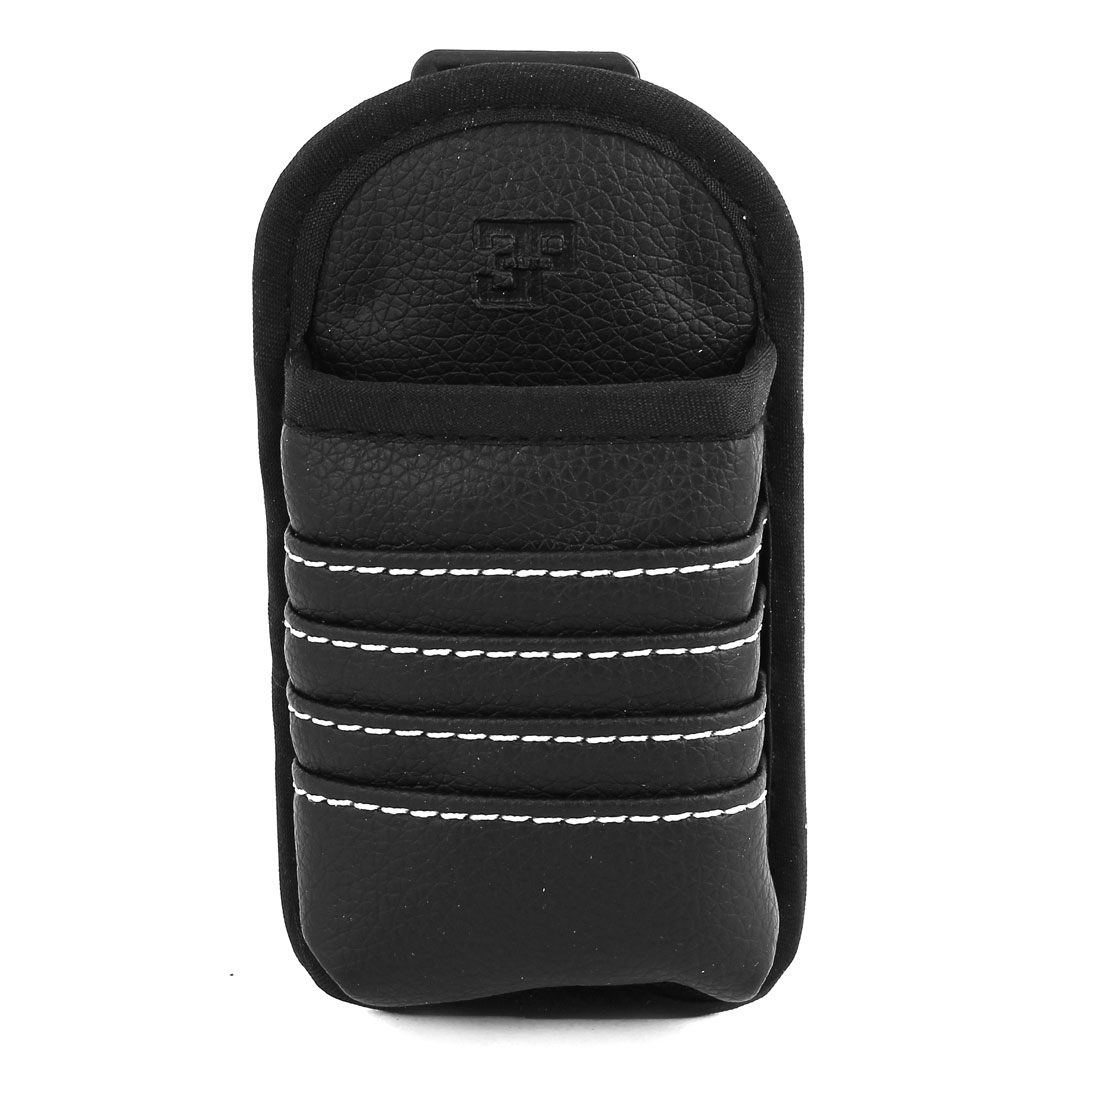 Vehicle Car Black Faux Leather Mobile Phone Pouch Holder Bag